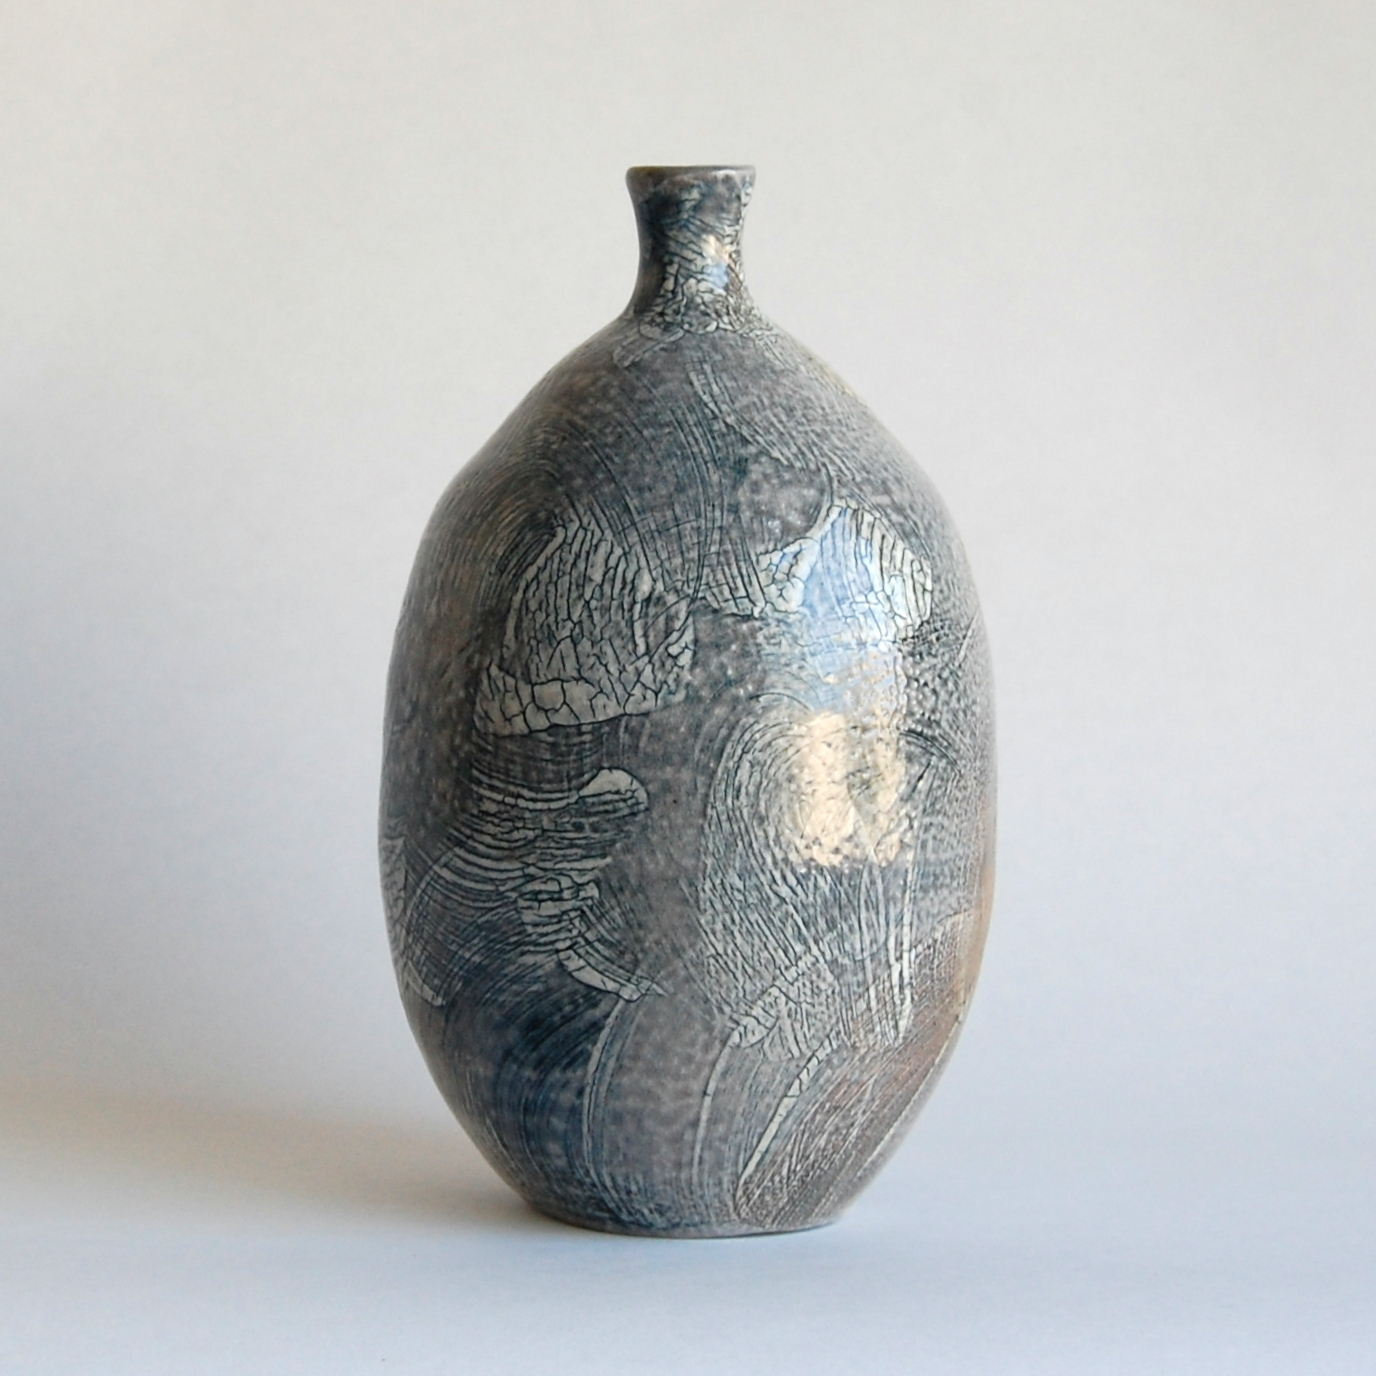 Tall 6.5 inch blue and white, hand made, soda fired bottle with slip design